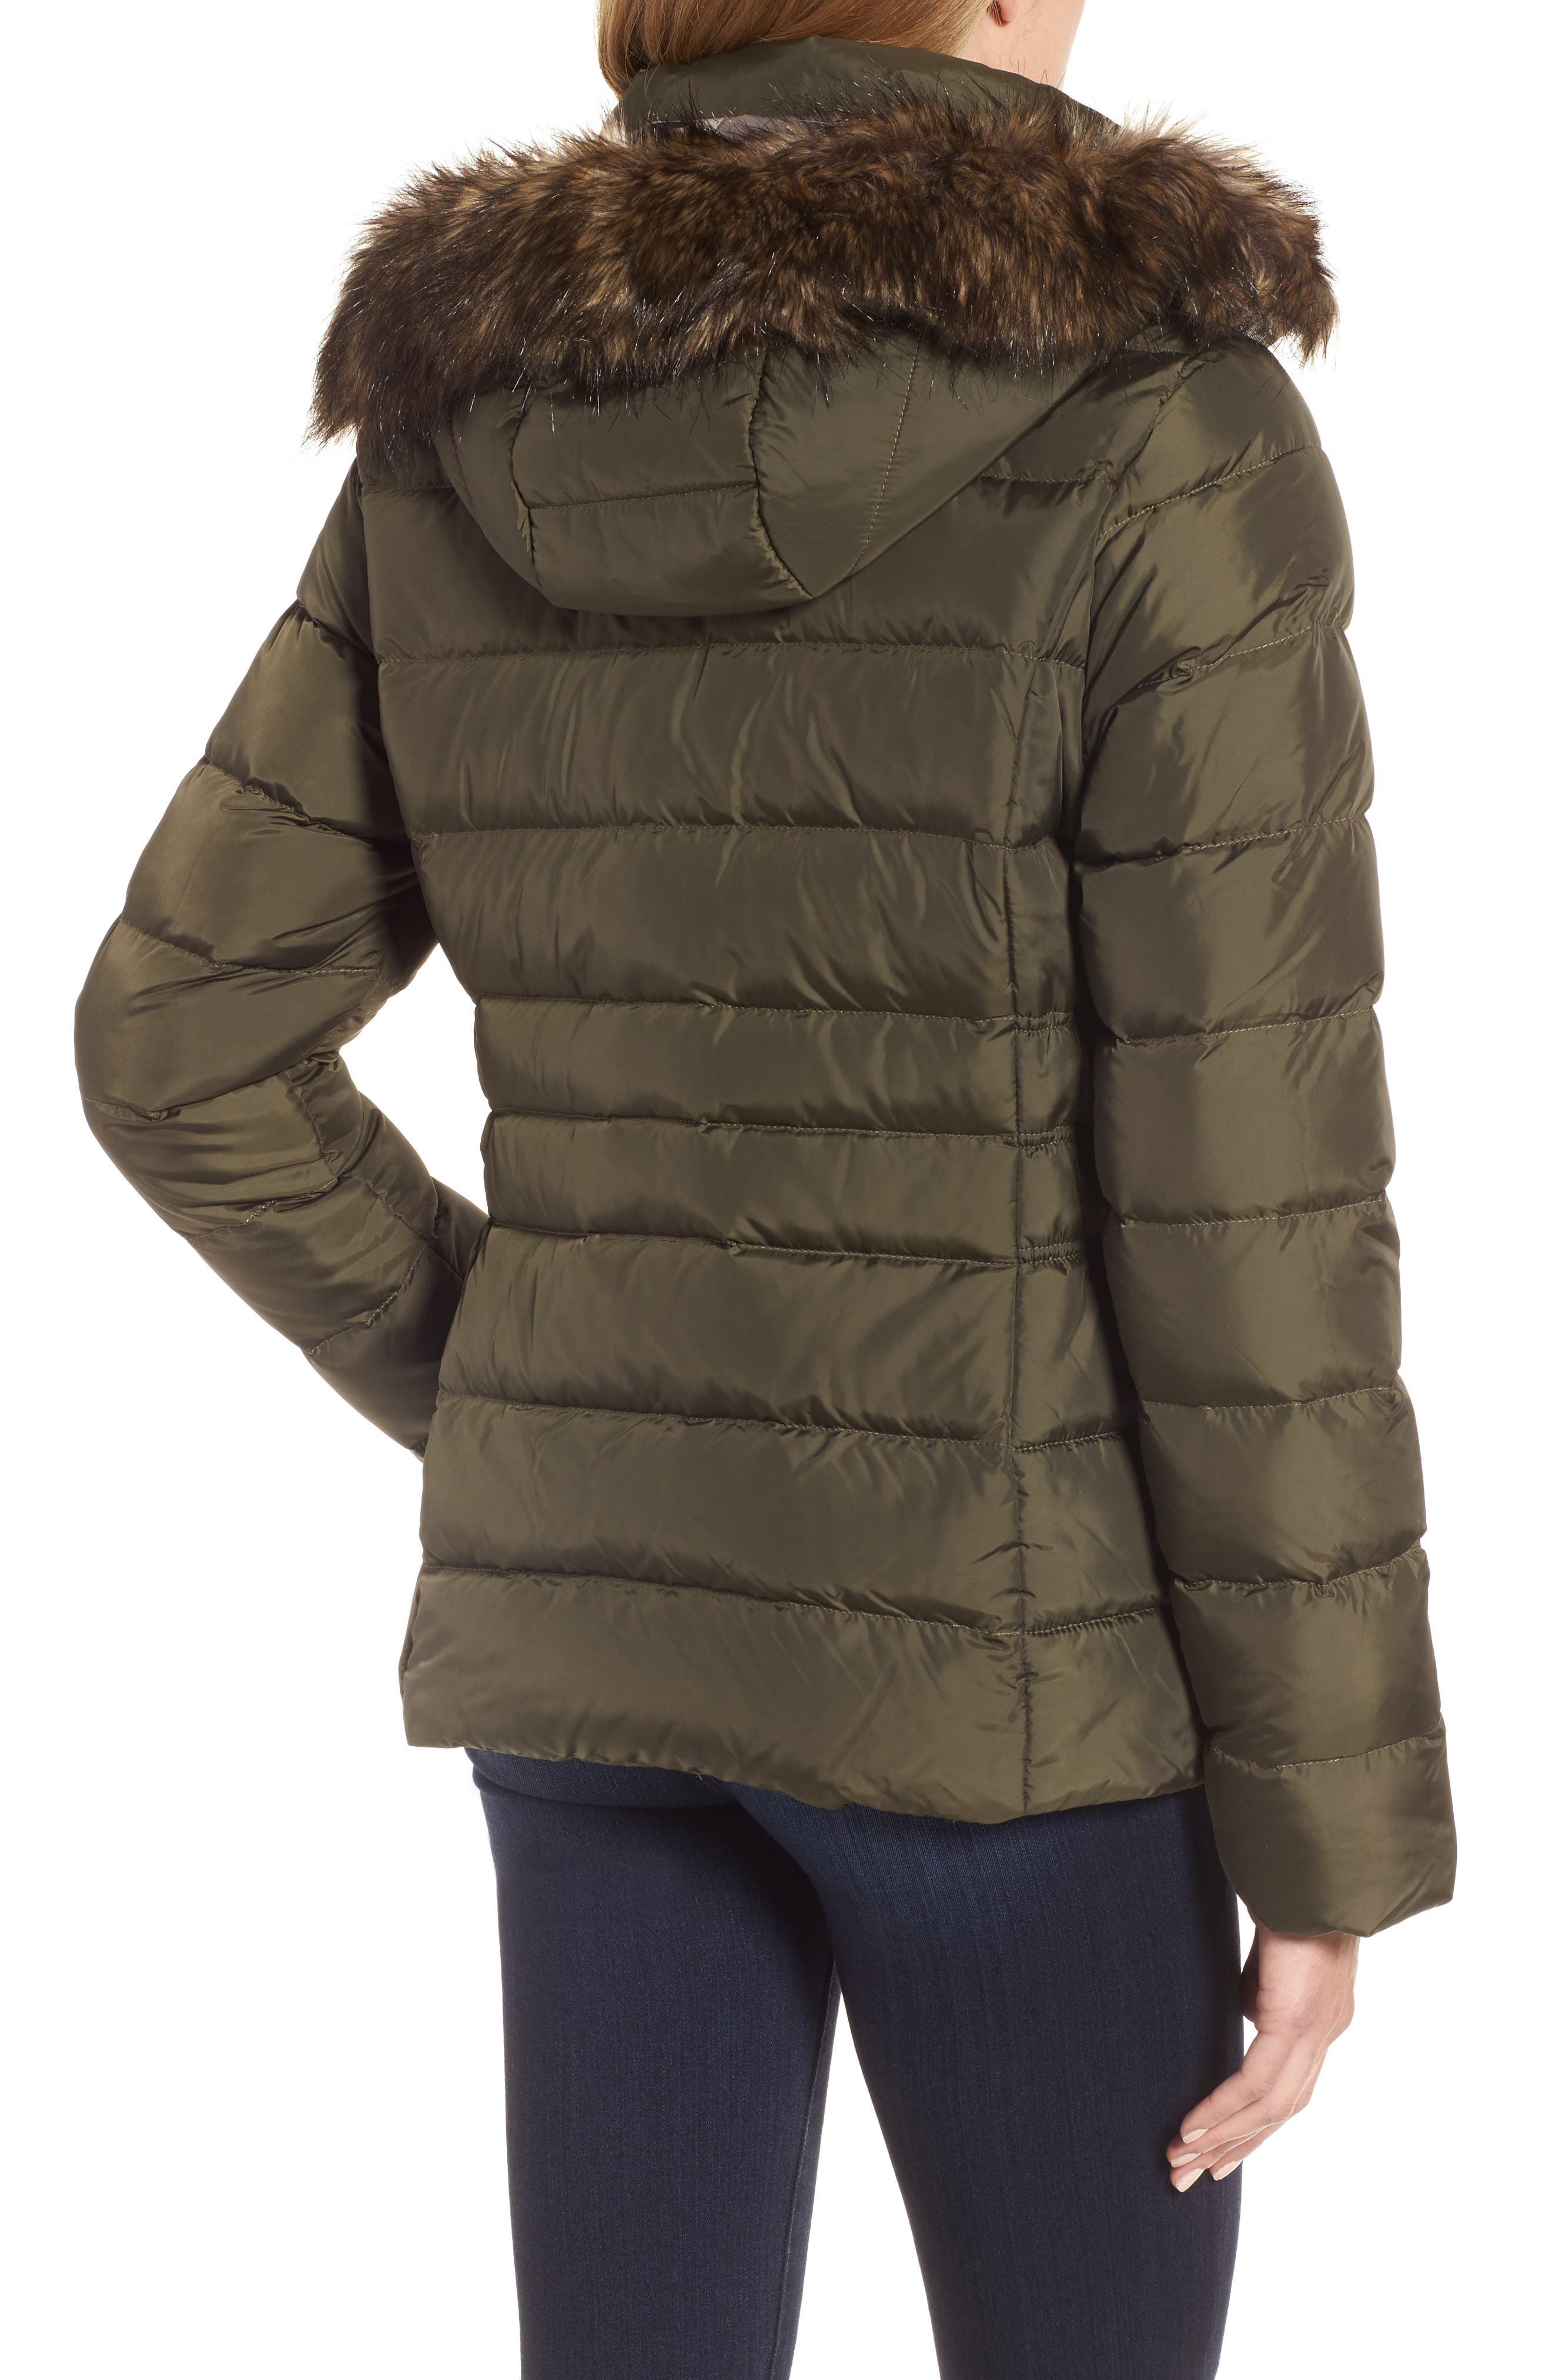 Gotham II Hooded Water Resistant 550-Fill-Power Down Jacket with Faux Fur Trim,                             Alternate thumbnail 2, color,                             New Taupe Green